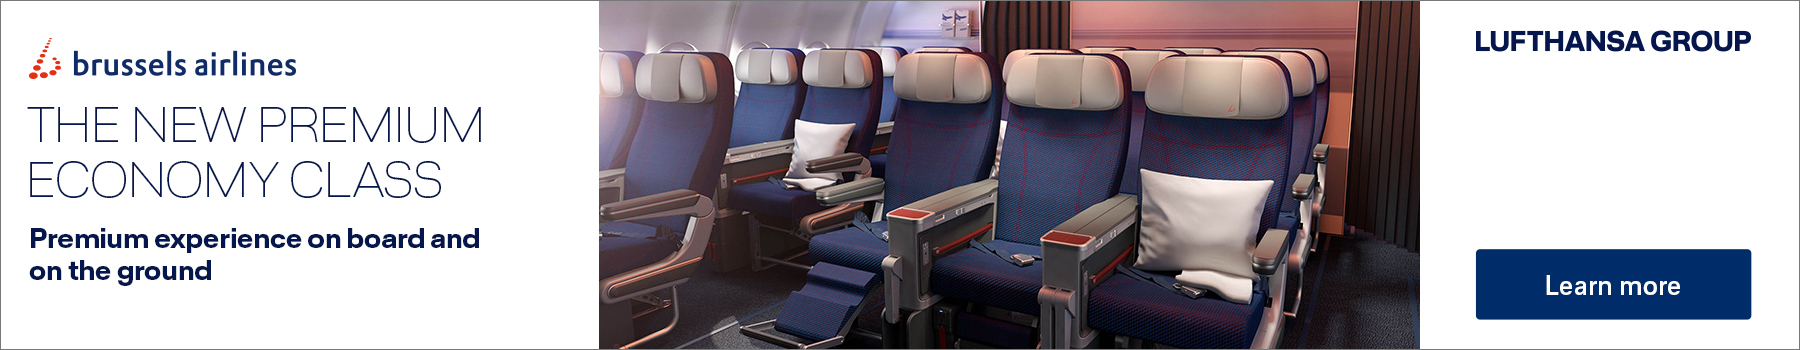 The New Premium Economy Class with Brussels Airlines